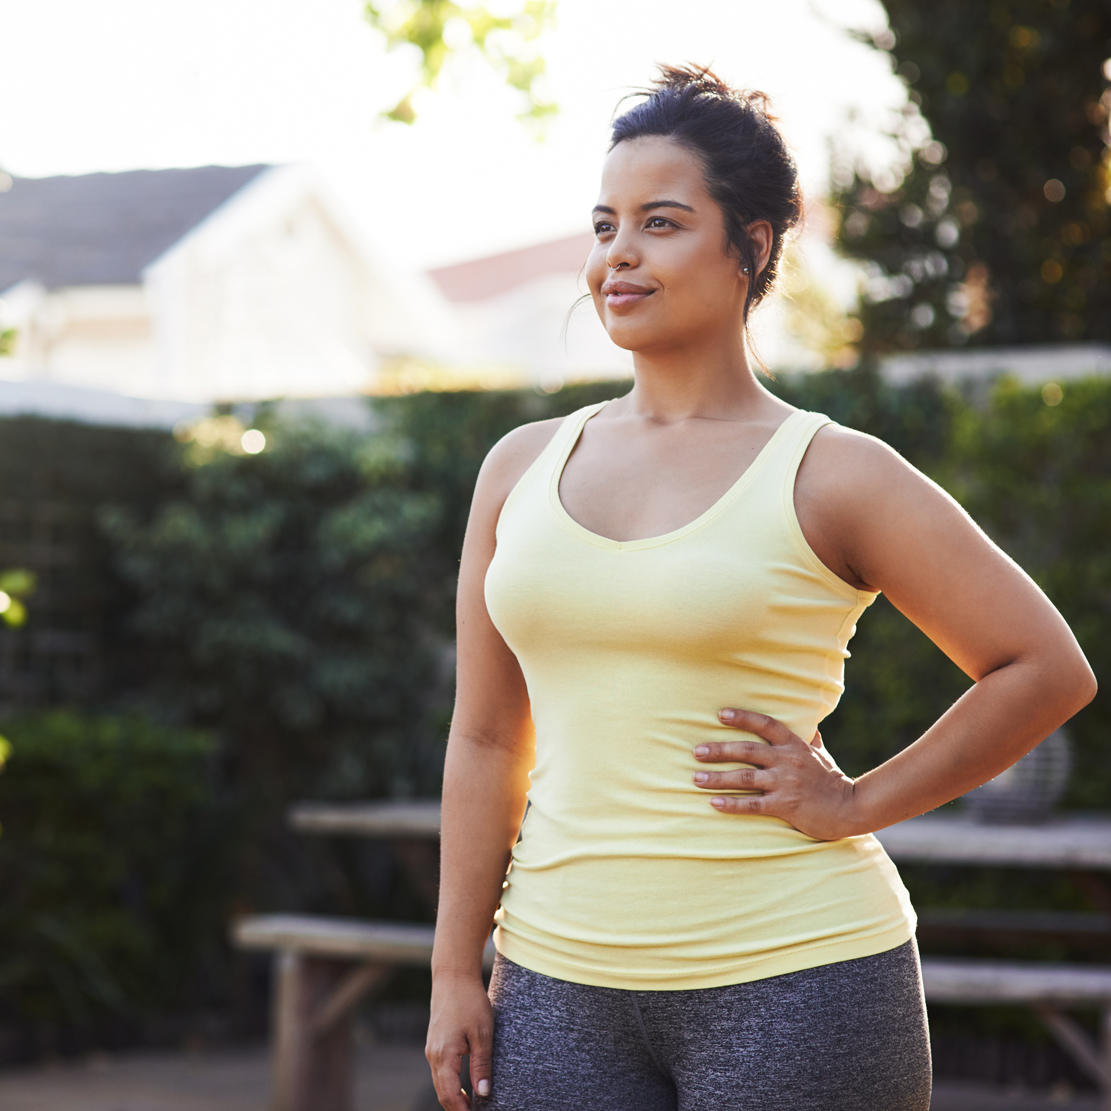 woman in workout clothes standing in her back yard